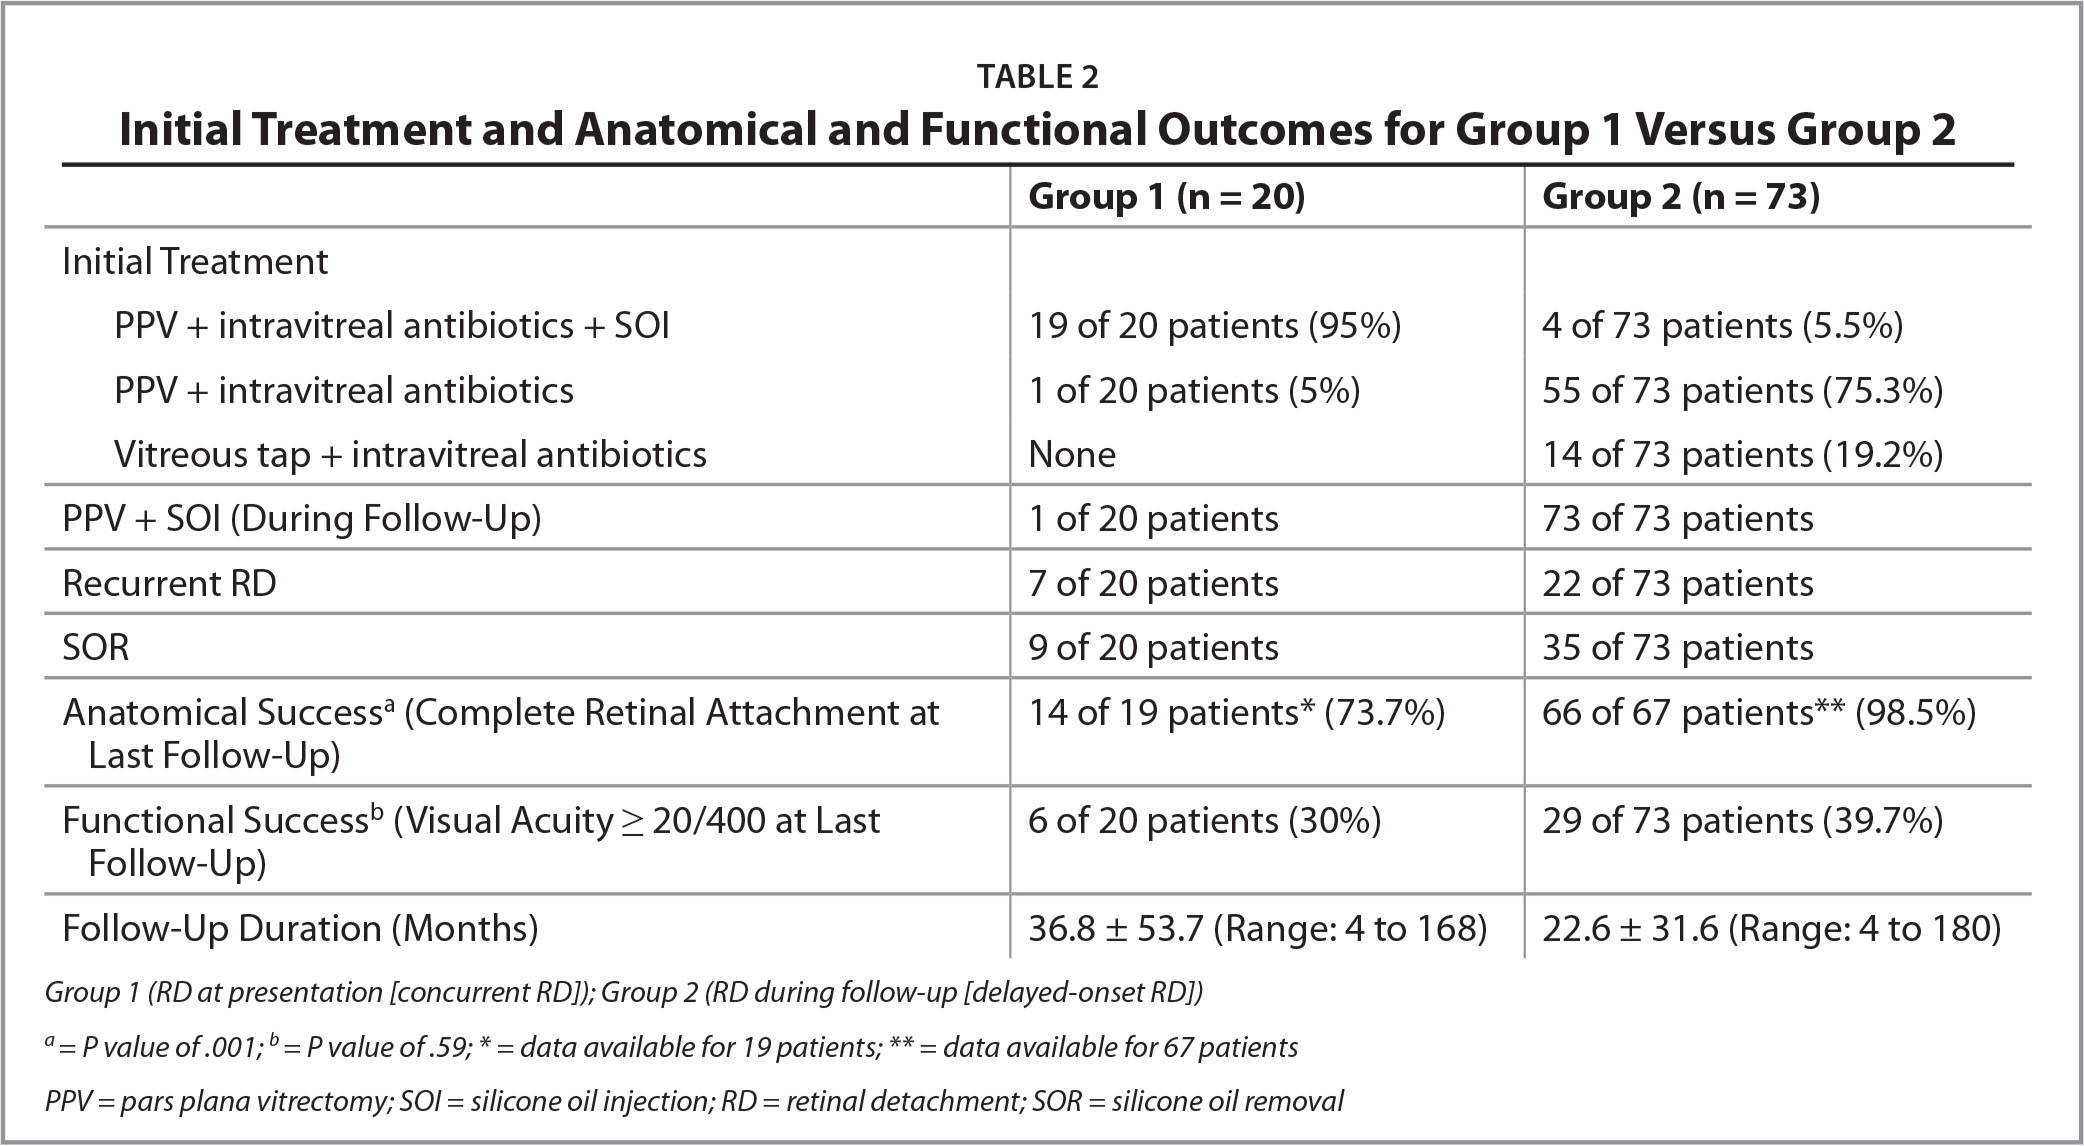 Initial Treatment and Anatomical and Functional Outcomes for Group 1 Versus Group 2